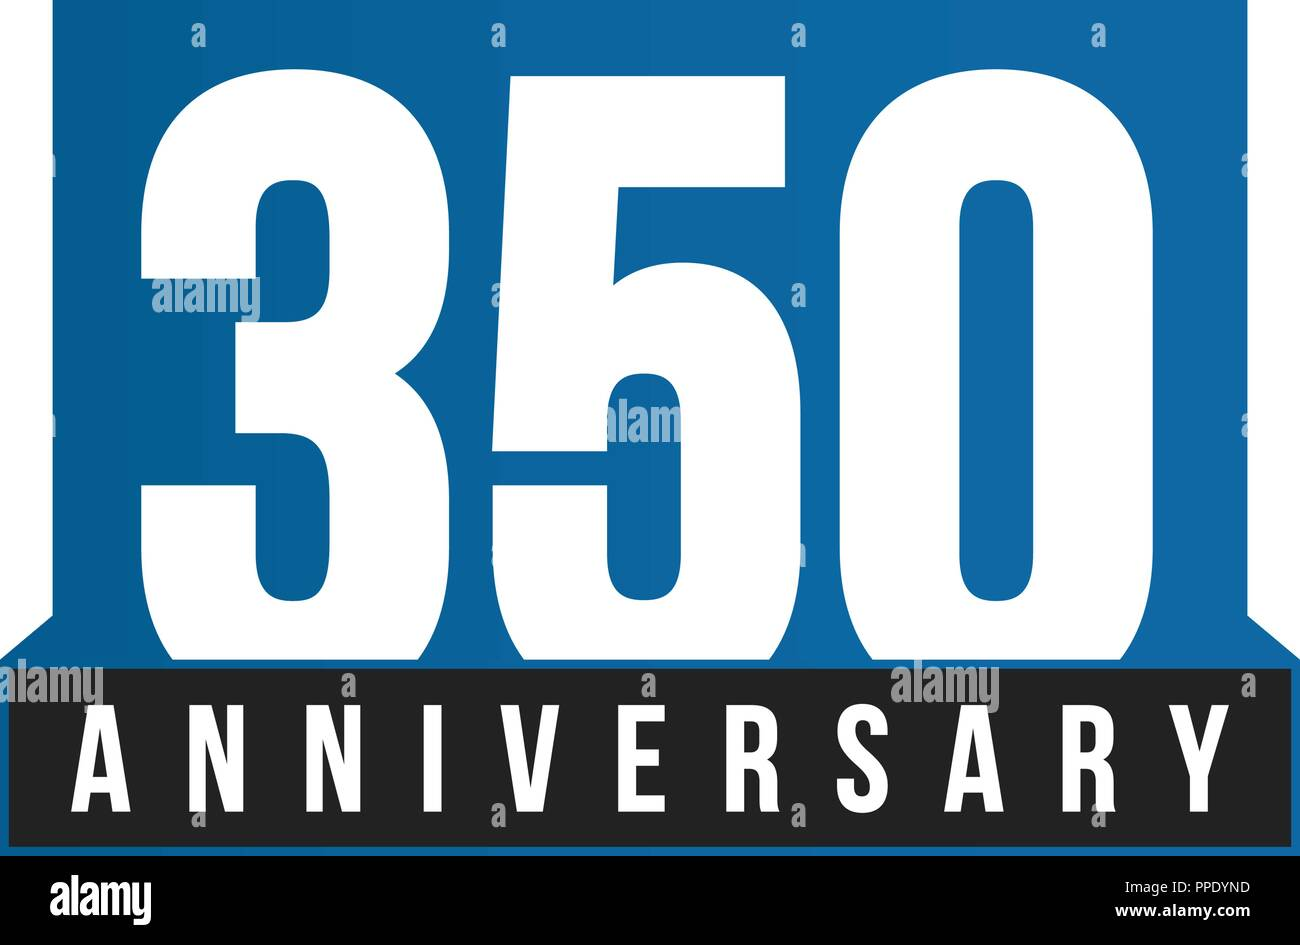 350th Anniversary vector icon. Birthday logo template. Greeting card design element. Simple business anniversary emblem. Blue strict style number. Isolated vector illustration on white background. - Stock Image